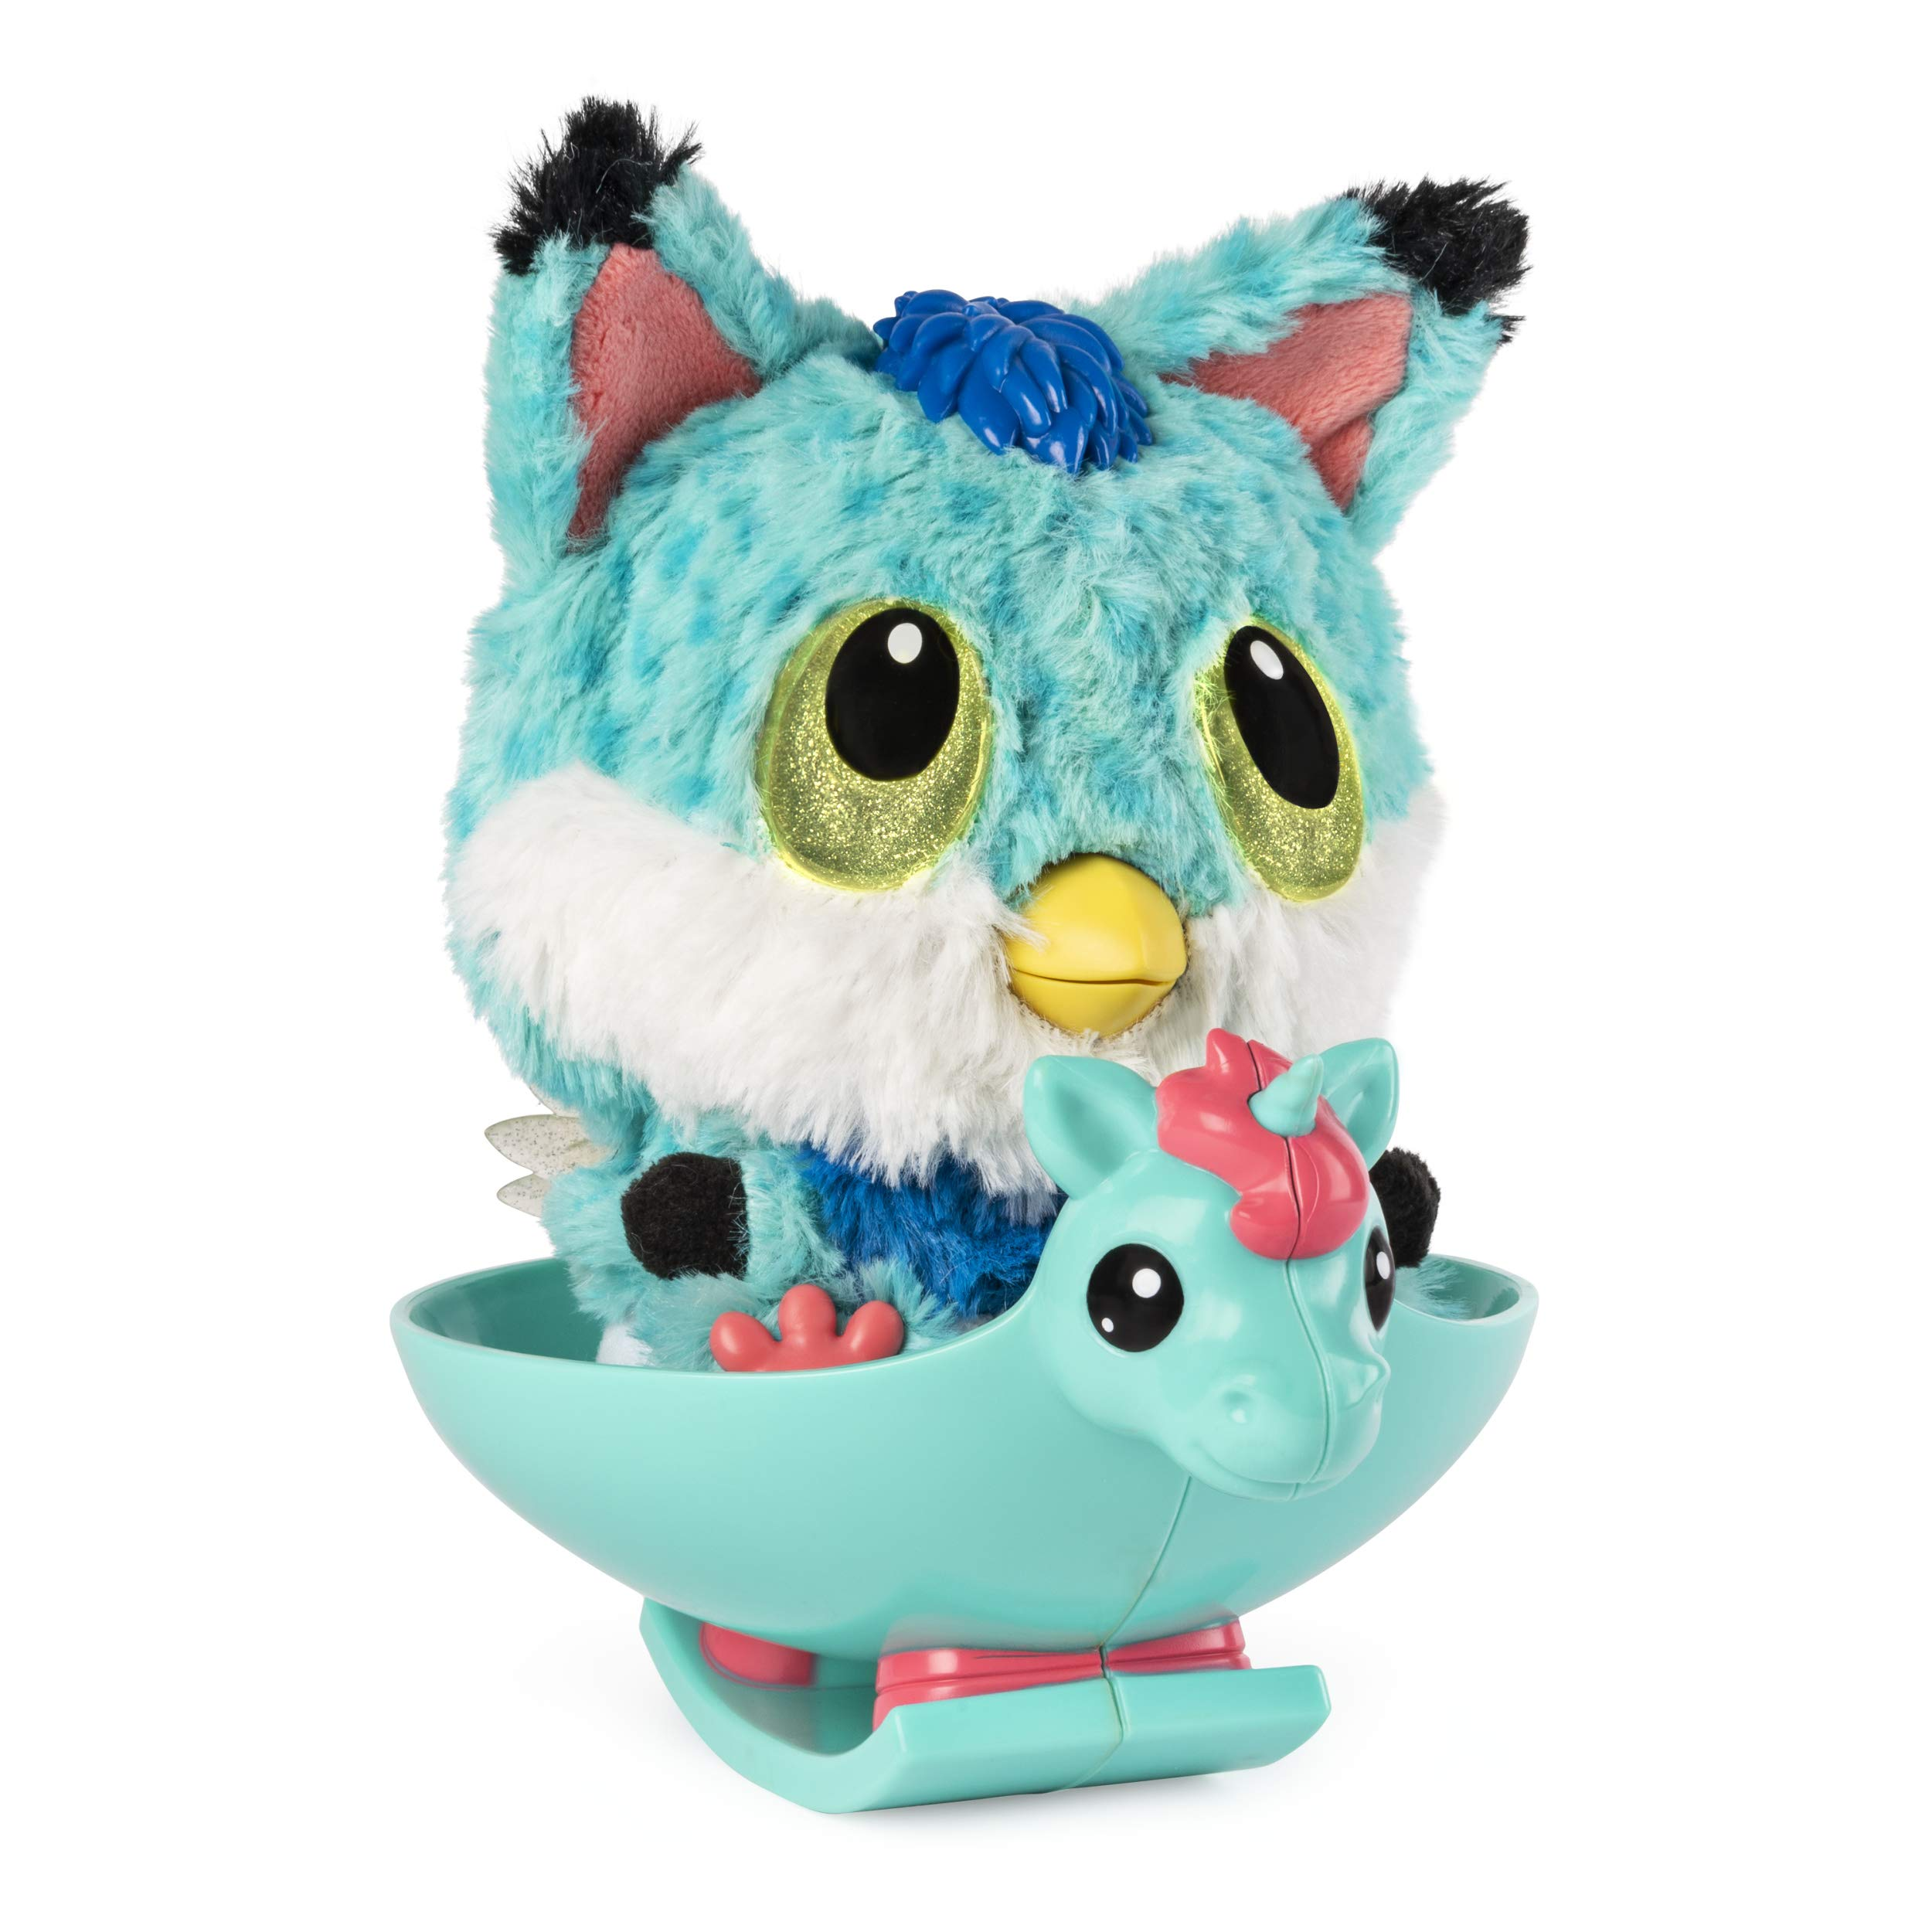 Hatchibabies FoxFin - Hatching Egg with Interactive Pet Baby (Styles May Vary) Ages 5 and Up - HOT Toy 2018 by Hatchimals (Image #3)